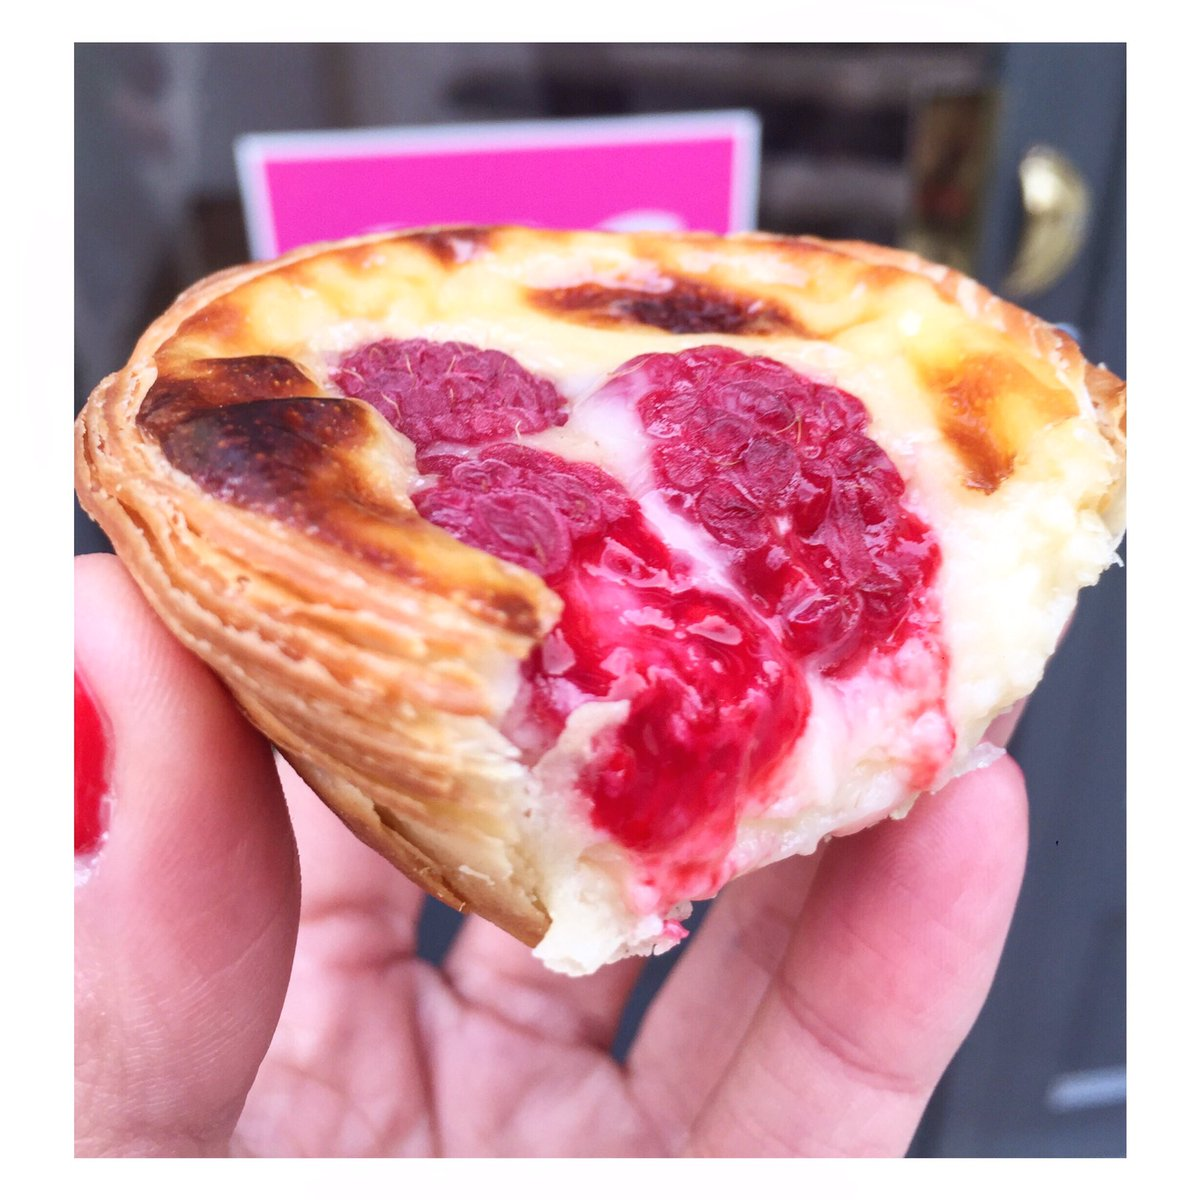 We can't get enough of the raspberry nata! The crispy dough, fresh fruit and succulent cream 🤤 is quite the perfection! #perfect #friday #pasteldenata #pasteisdenata #raspberry #bomdia #goodmorning #love #hammersmith #southkensington #soho #espresso #coffee #cafe #masterchef